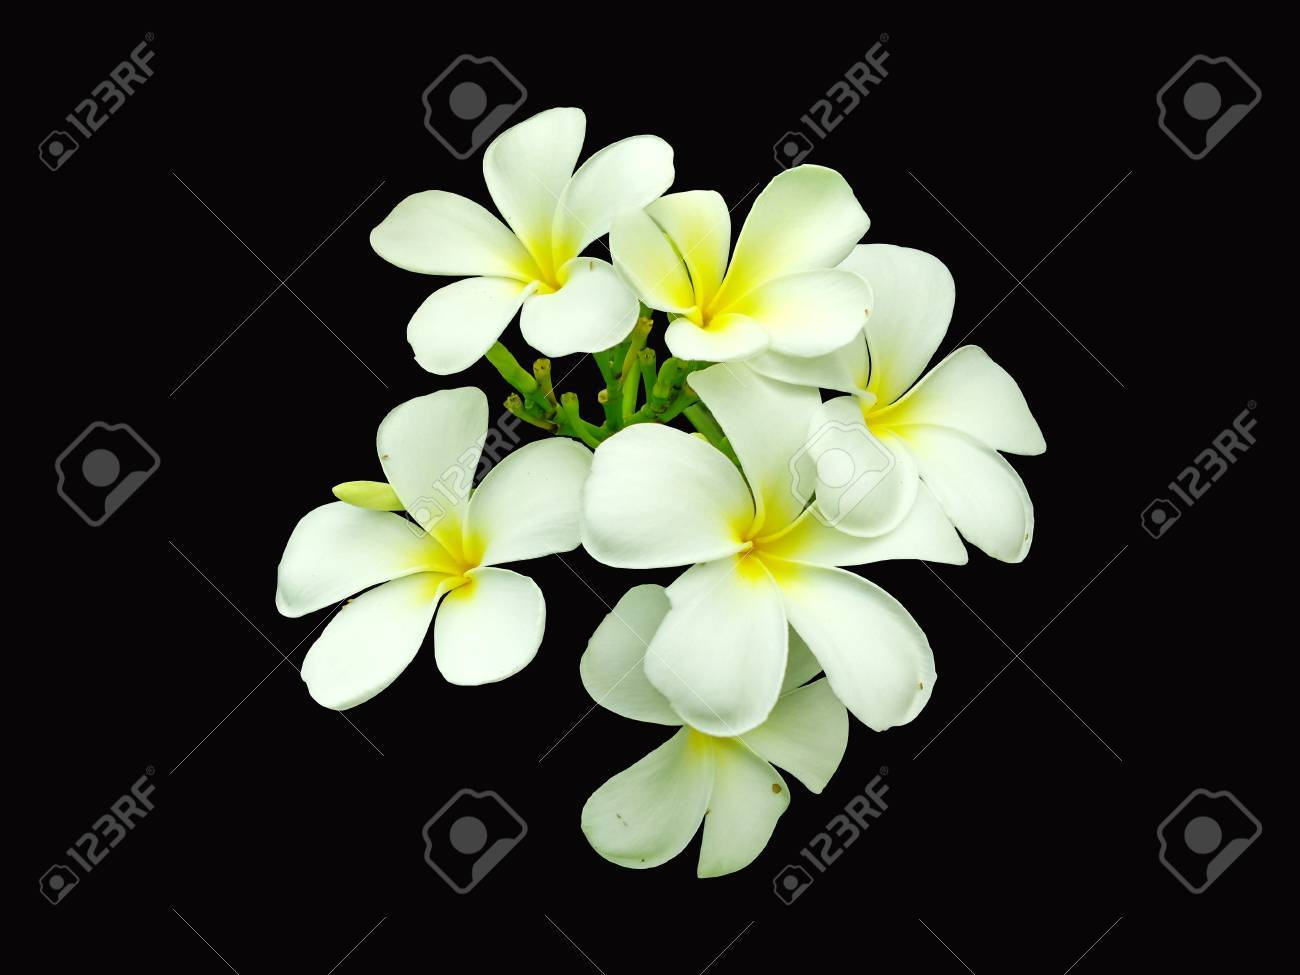 White Flowers Isolated On Black Color Background For Retouch Stock ...